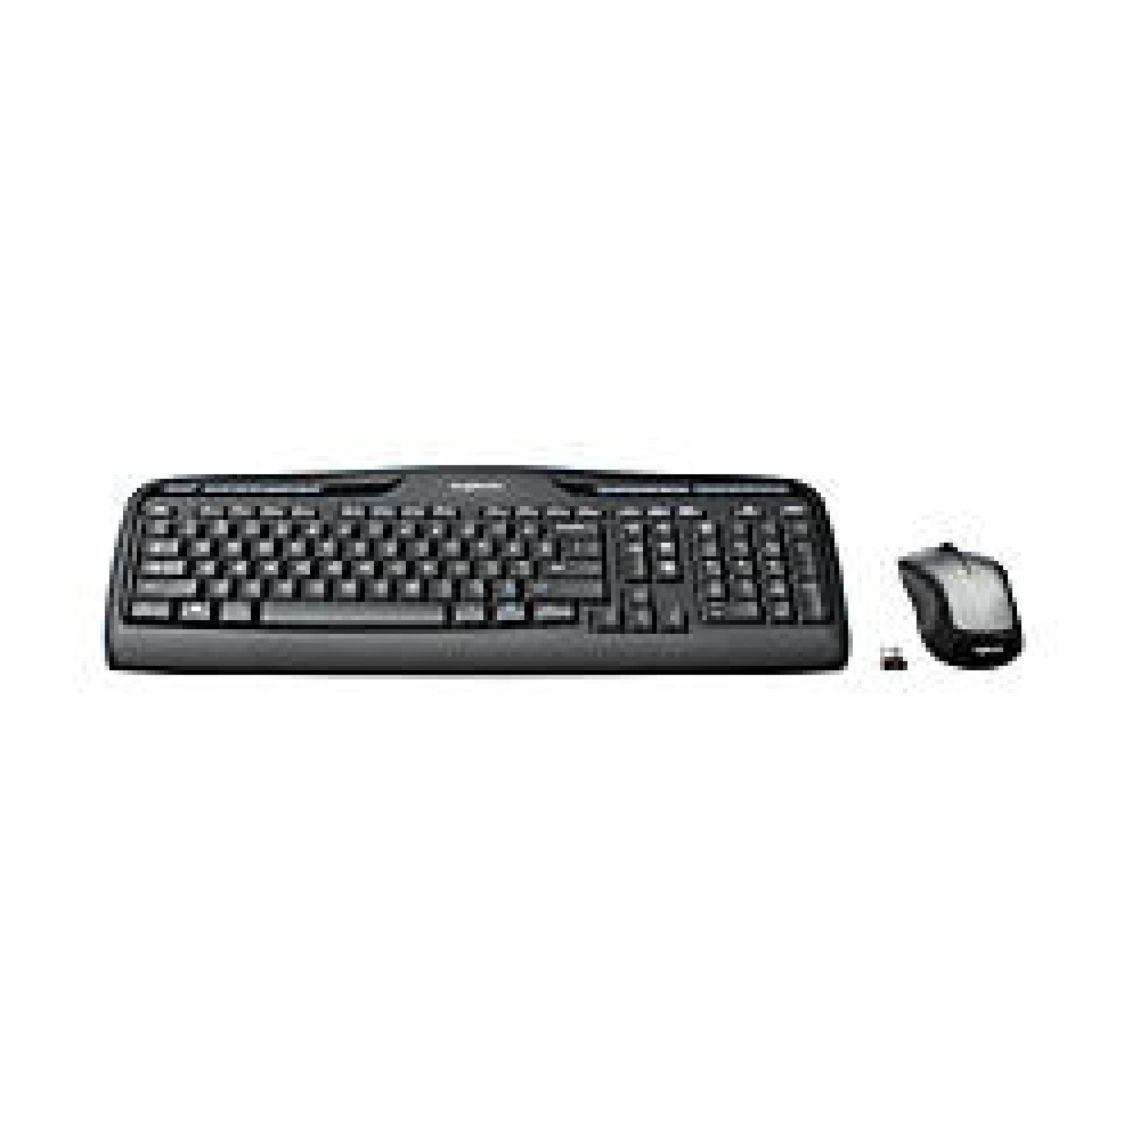 Logitech MK335 Wireless Keyboard And Mouse Black 920 008478 by Office Depot & OfficeMax